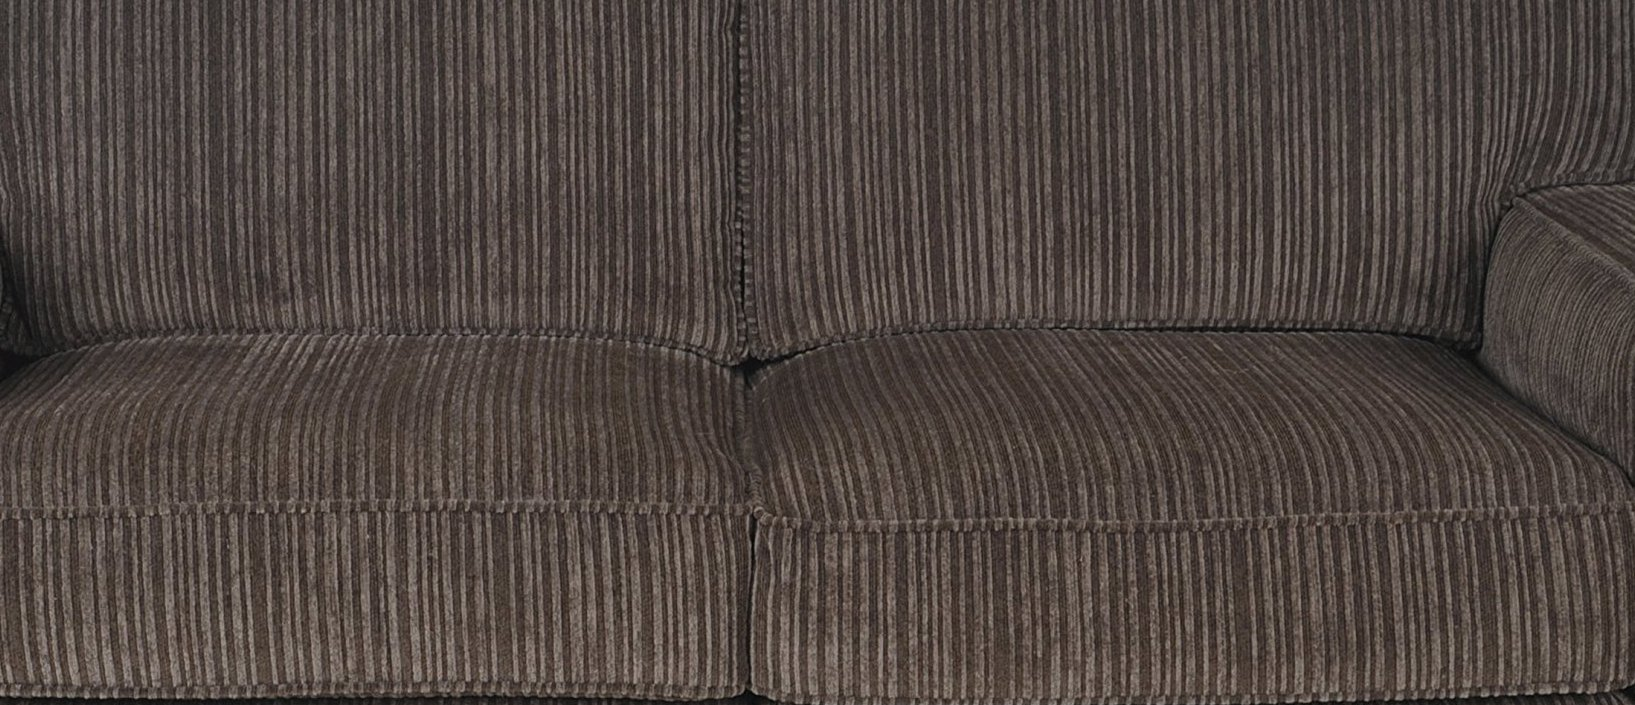 Serta RTA Palisades Collection 61'' Loveseat in Riverfront Brown by Serta (Image #12)